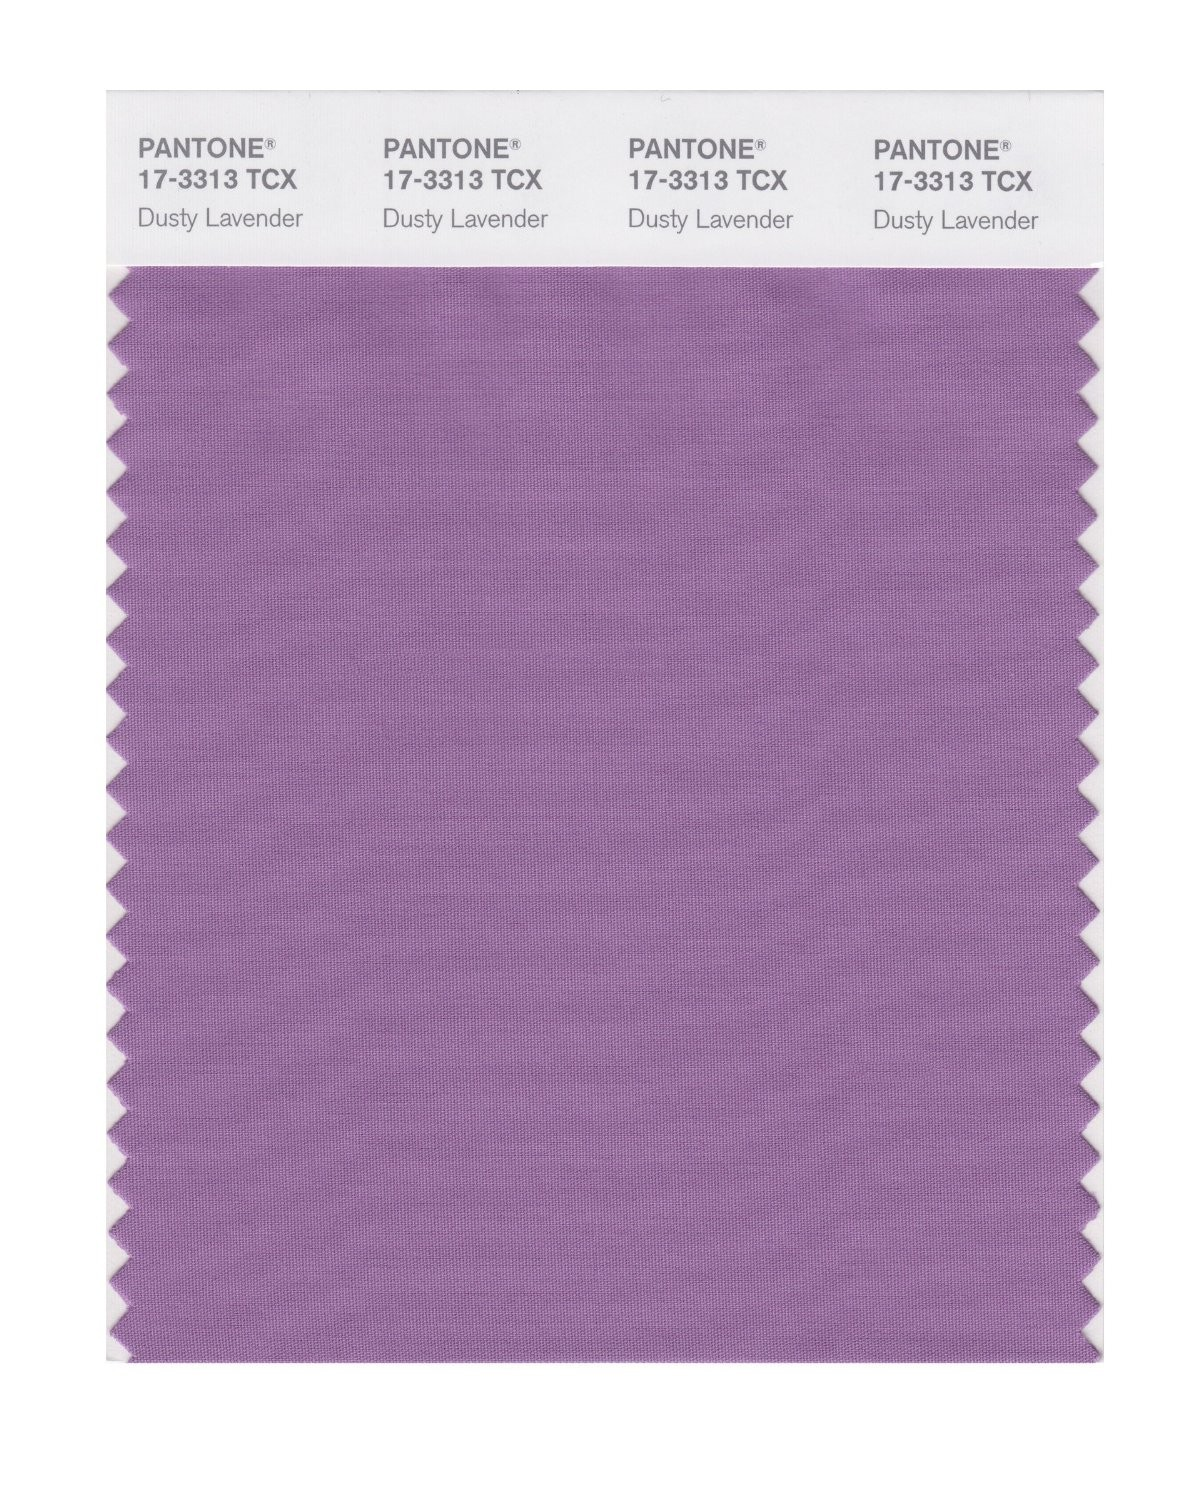 Pantone 17-3313 TCX Swatch Card Dusty Lavendar